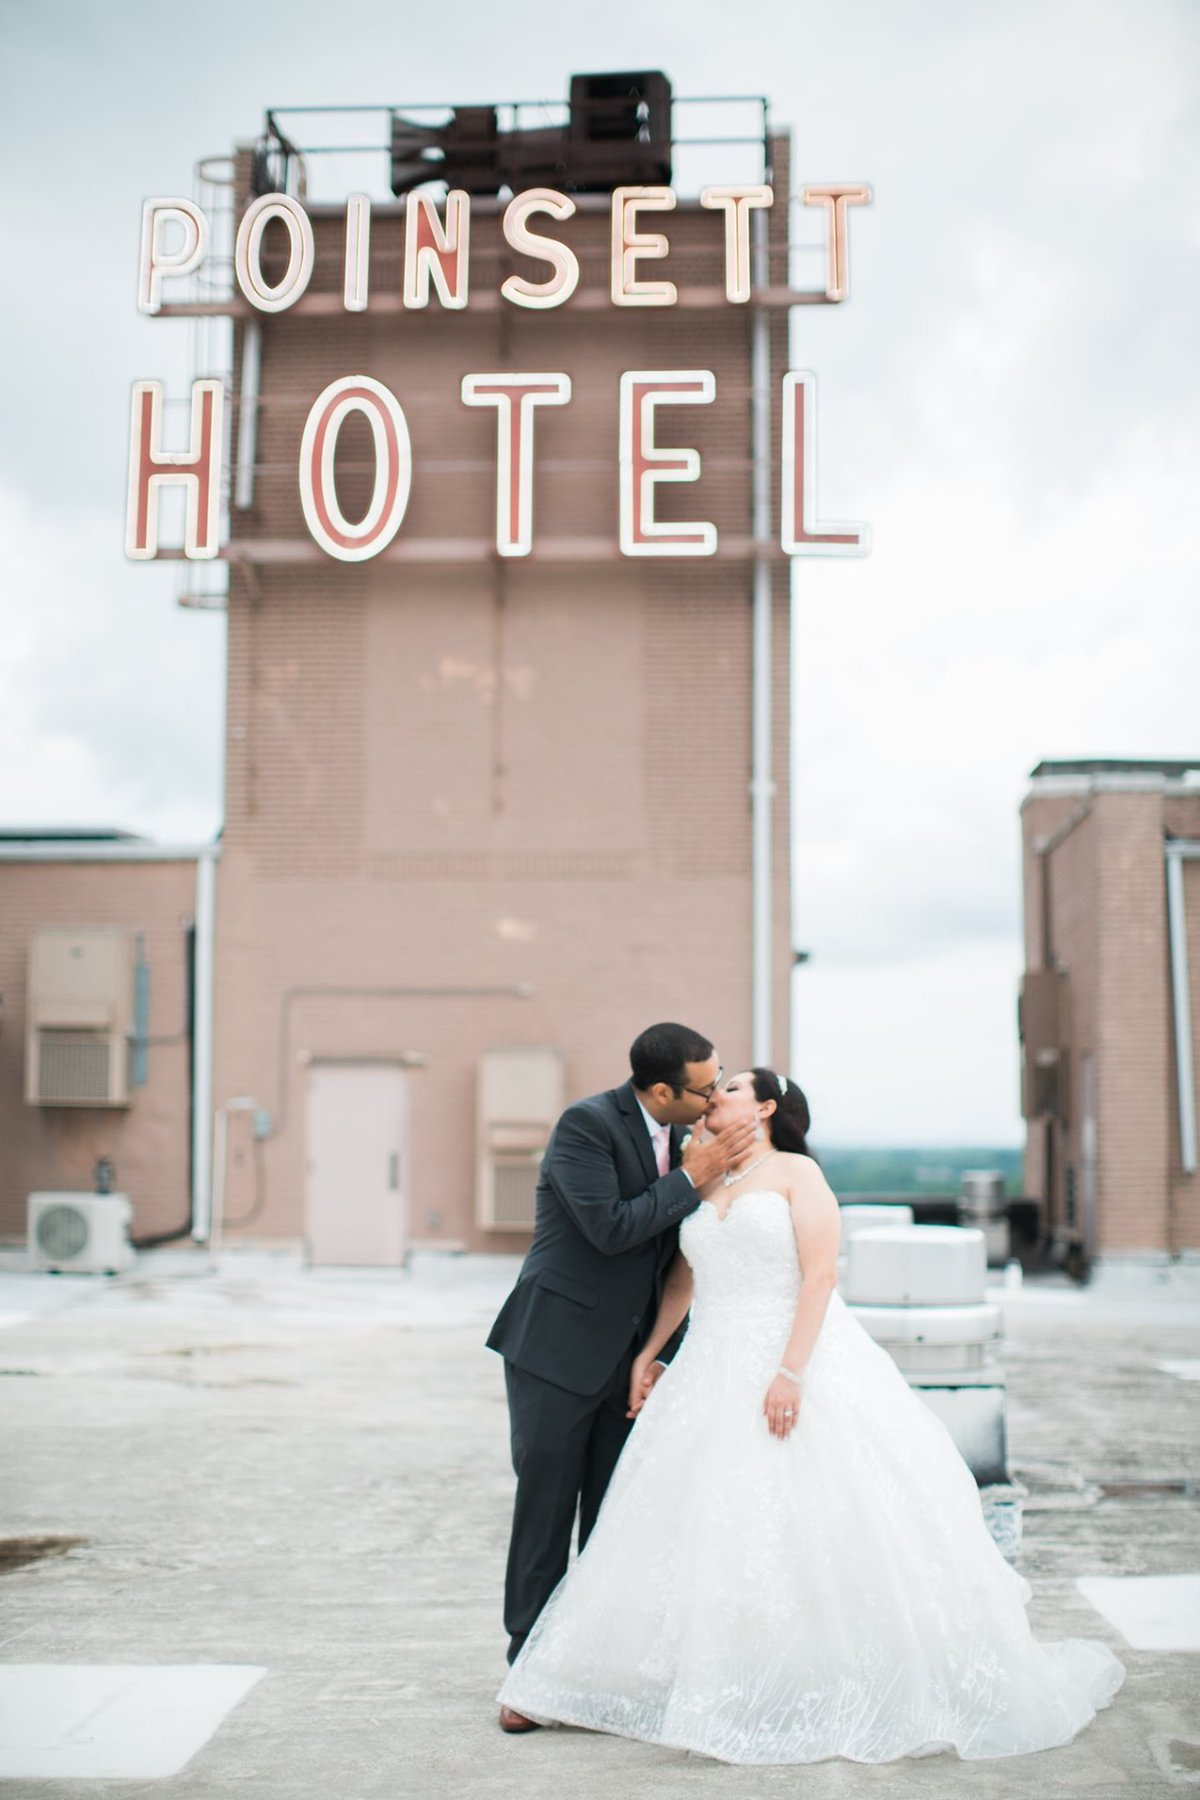 Wedding Photographer, couple kissing beneath a hotel sign